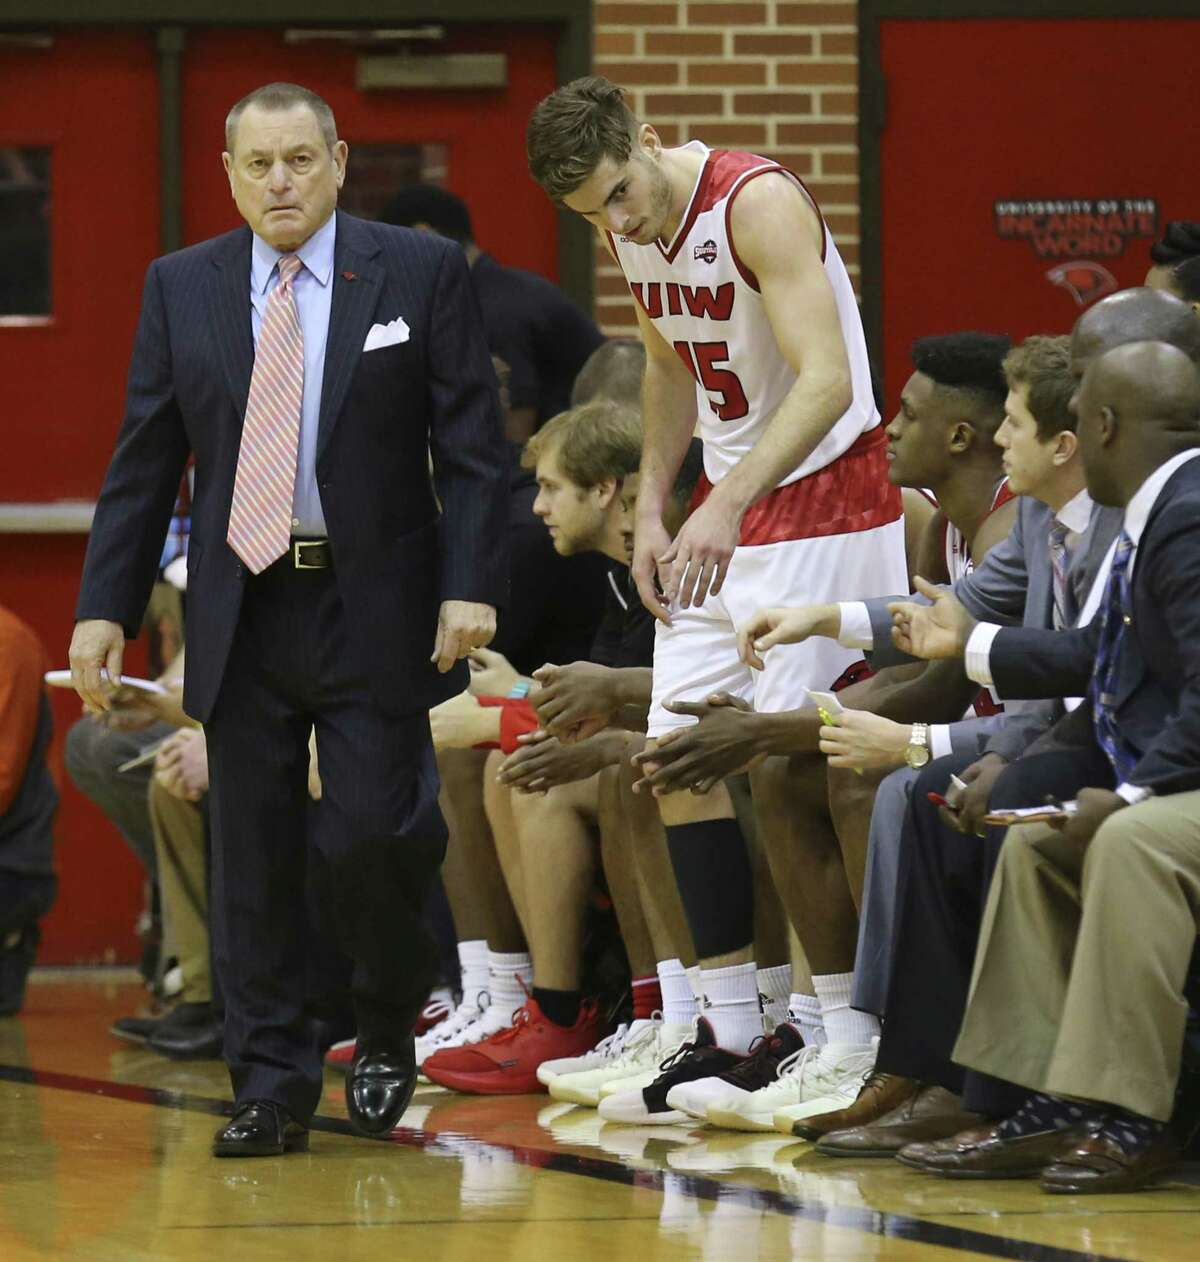 Profile on UIW basketball player Sam Burmeister who was heading to the bench beside his father, Ken Burmeister, who is the head coach of the basketball team during the Cardinals game against University of Missouri-Kansas City at McDermott Center on Saturday, Dec. 16, 2017.